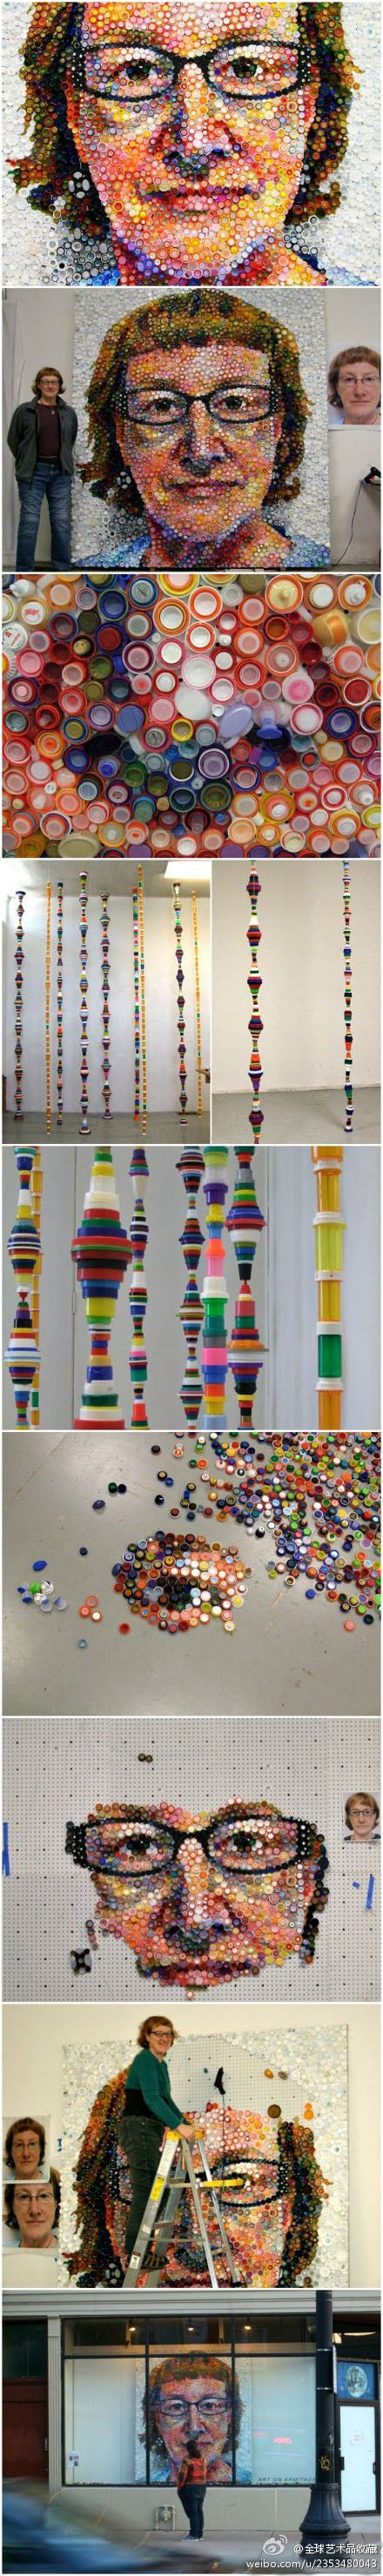 Bottle caps - amazing recycling idea. The final artwork reminded me of chuck close.